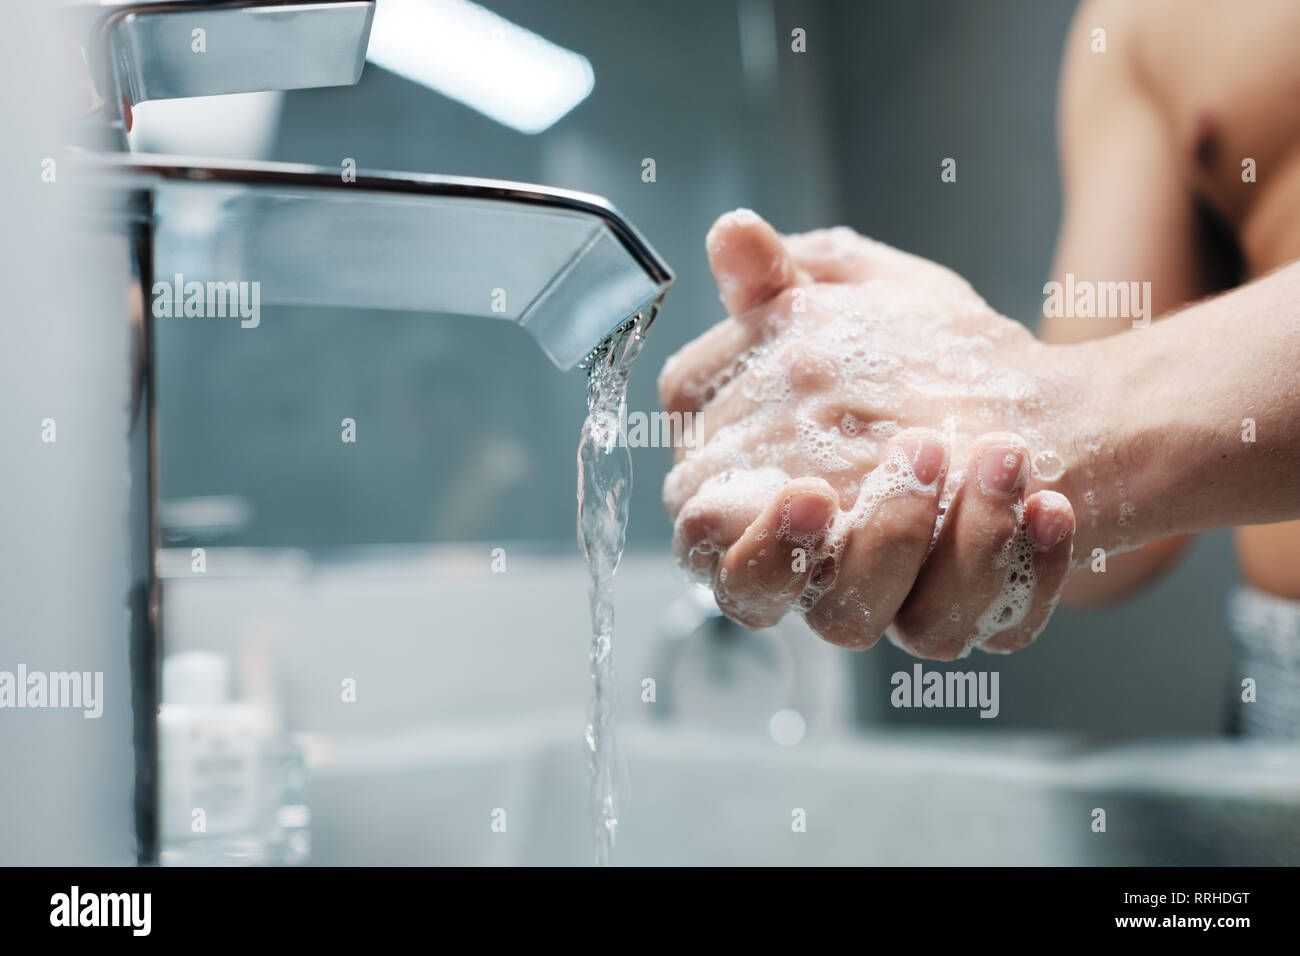 Man Washing Hands With Water And Soap In Bathroom - Stock Image